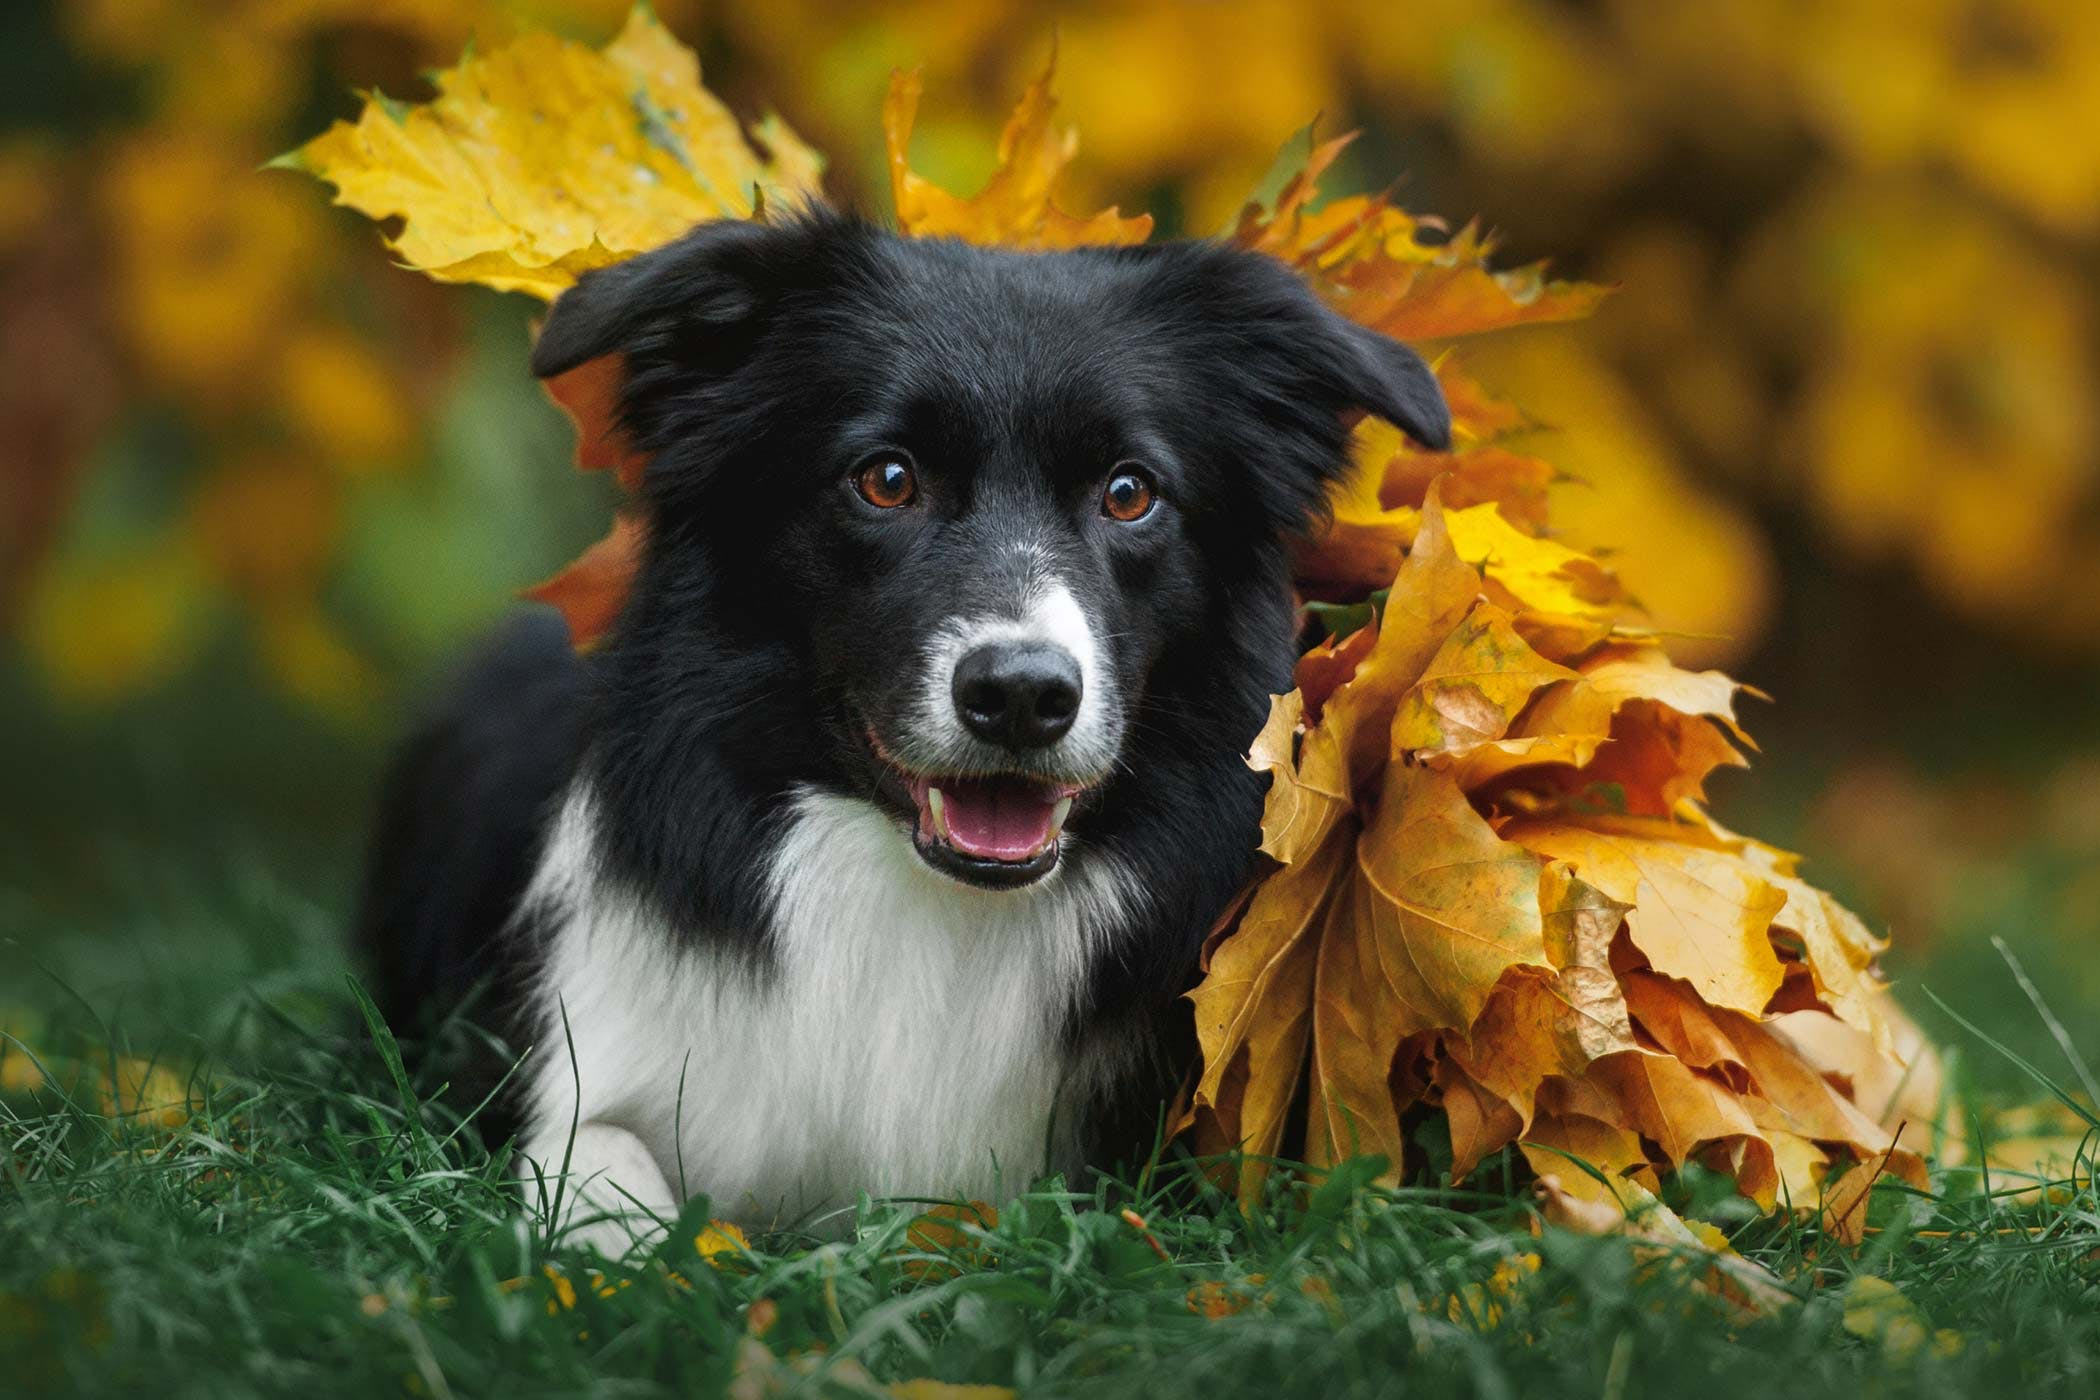 rage syndrome in dogs symptoms causes diagnosis treatment